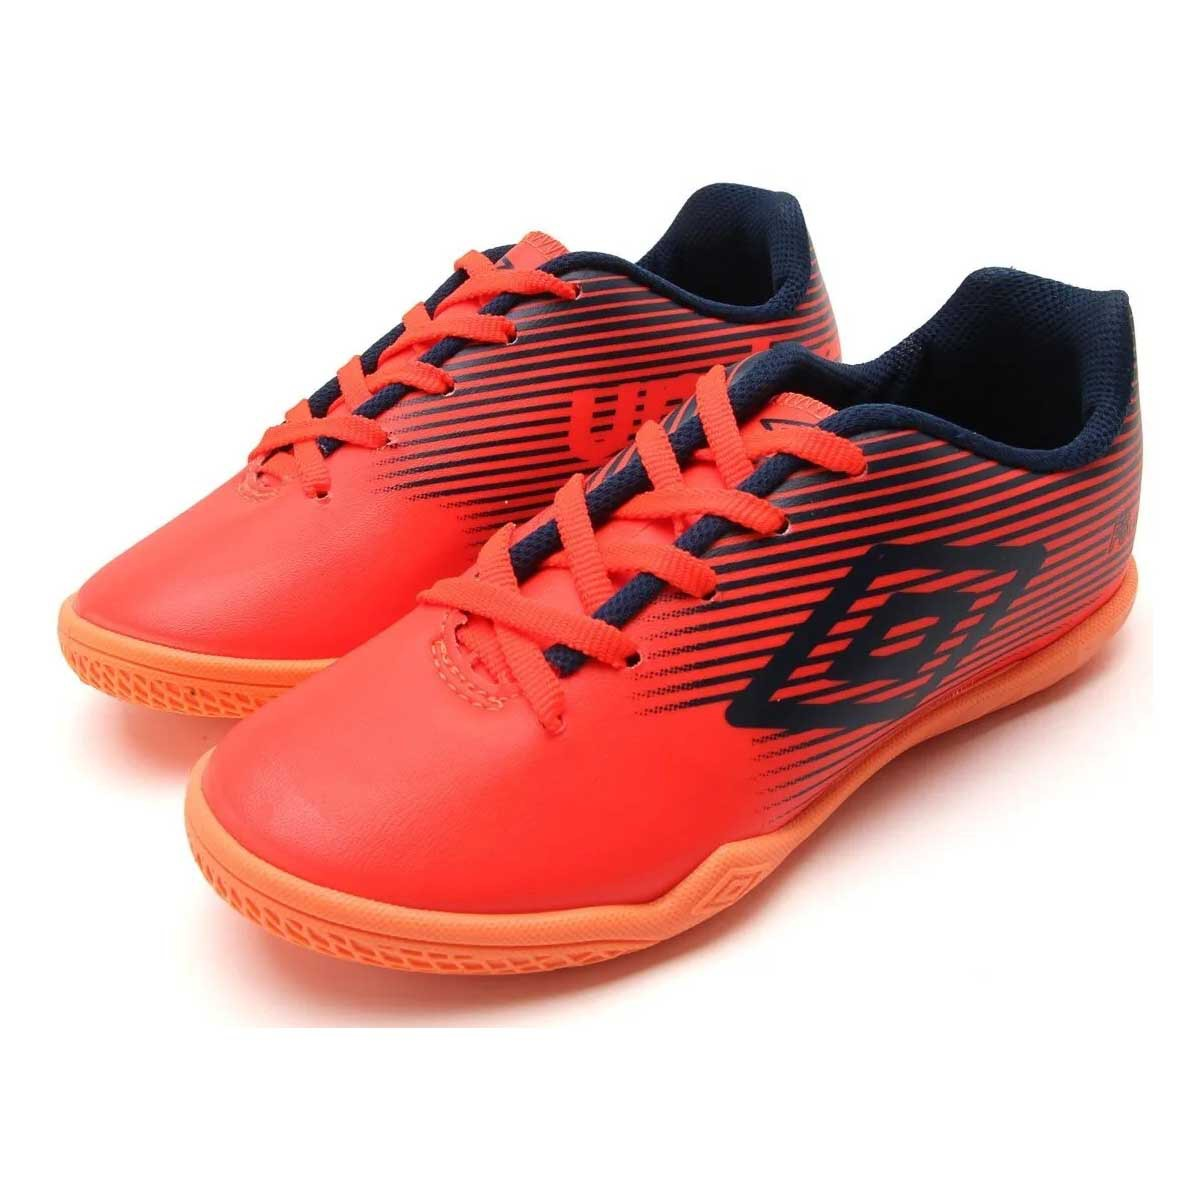 Tênis Umbro F5 Light Futsal Juvenil